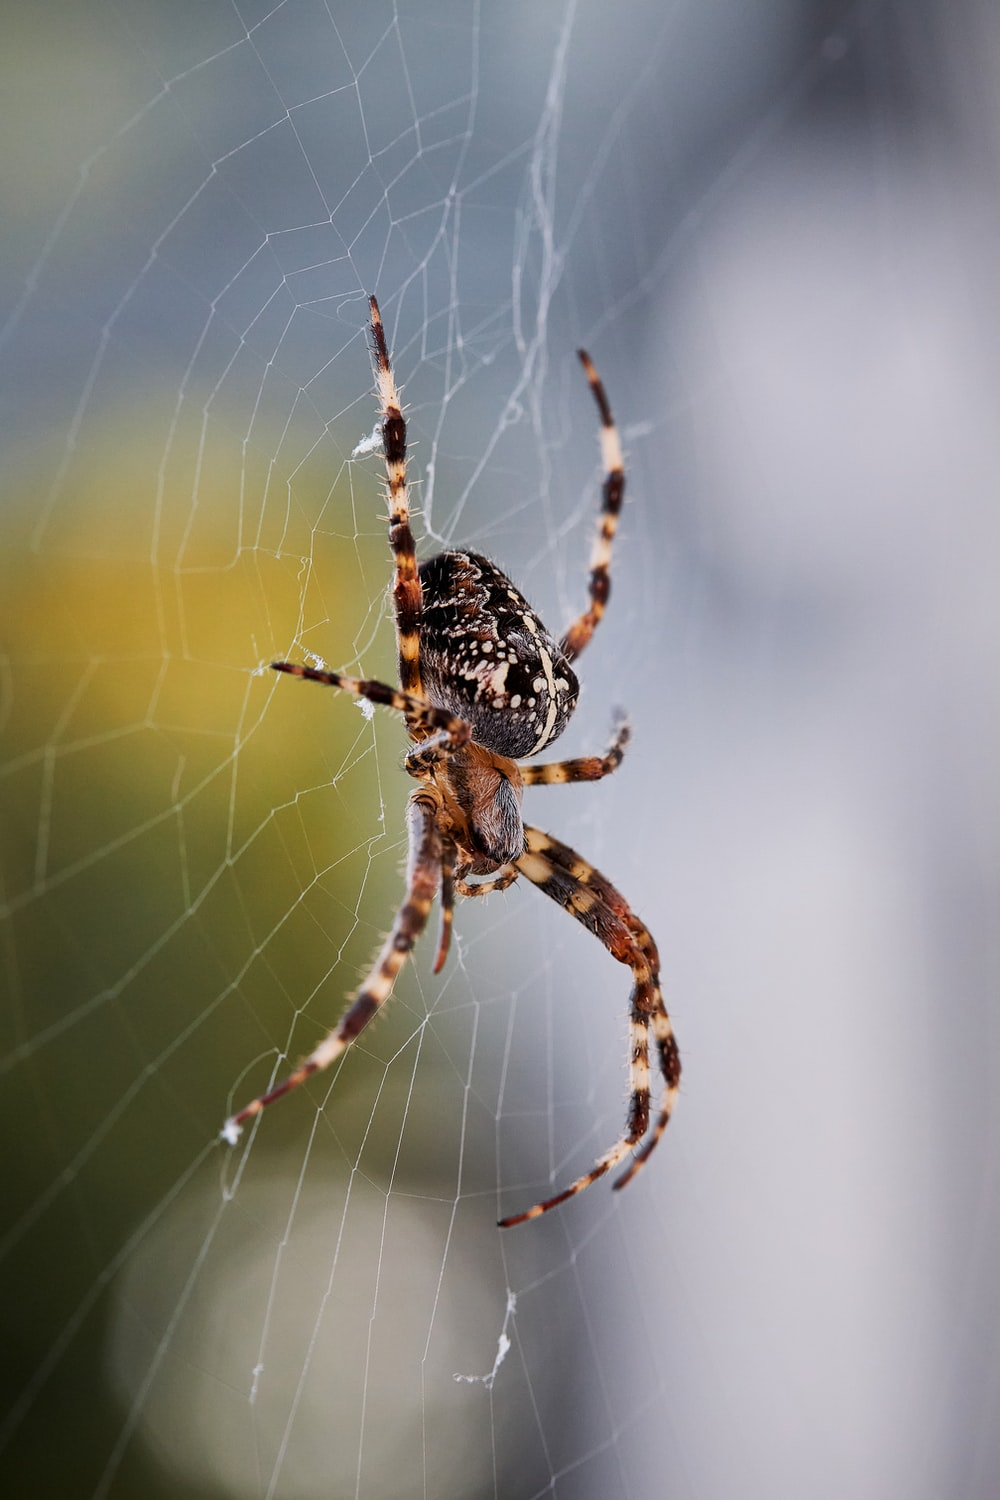 brown and black spider on web in close up photography during daytime